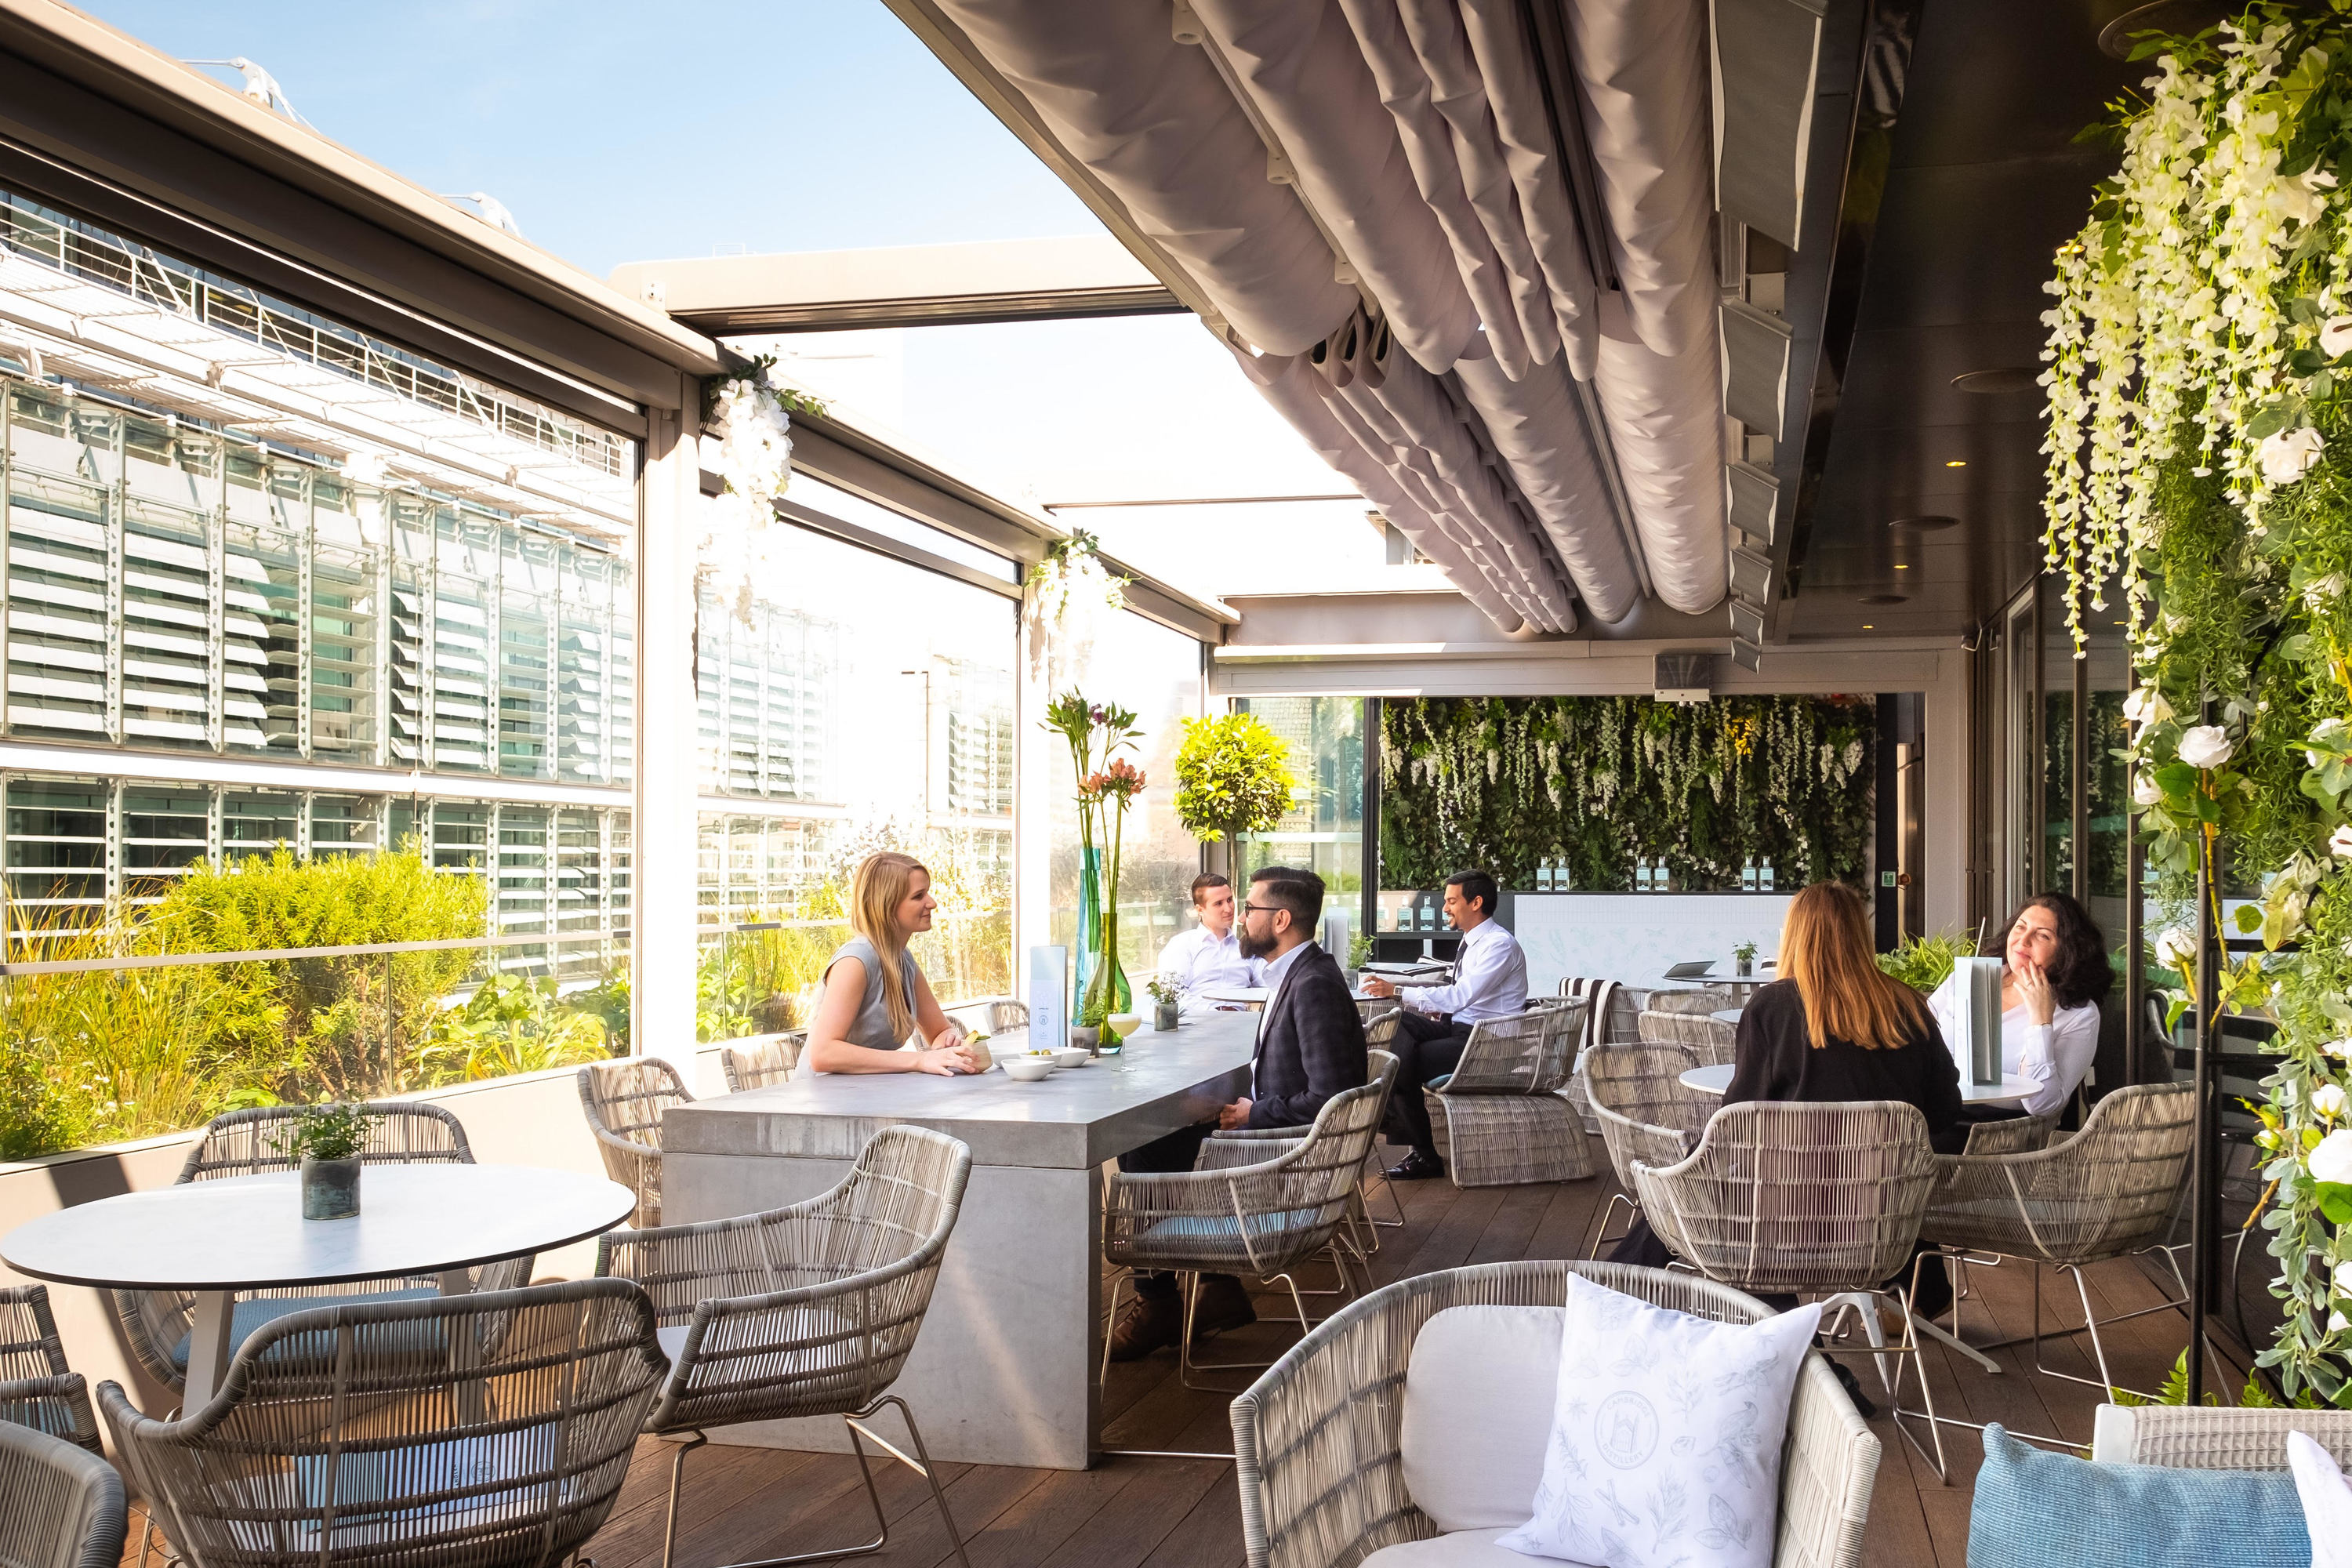 London S Best Outdoor Restaurants Ace Places To Eat Alfresco